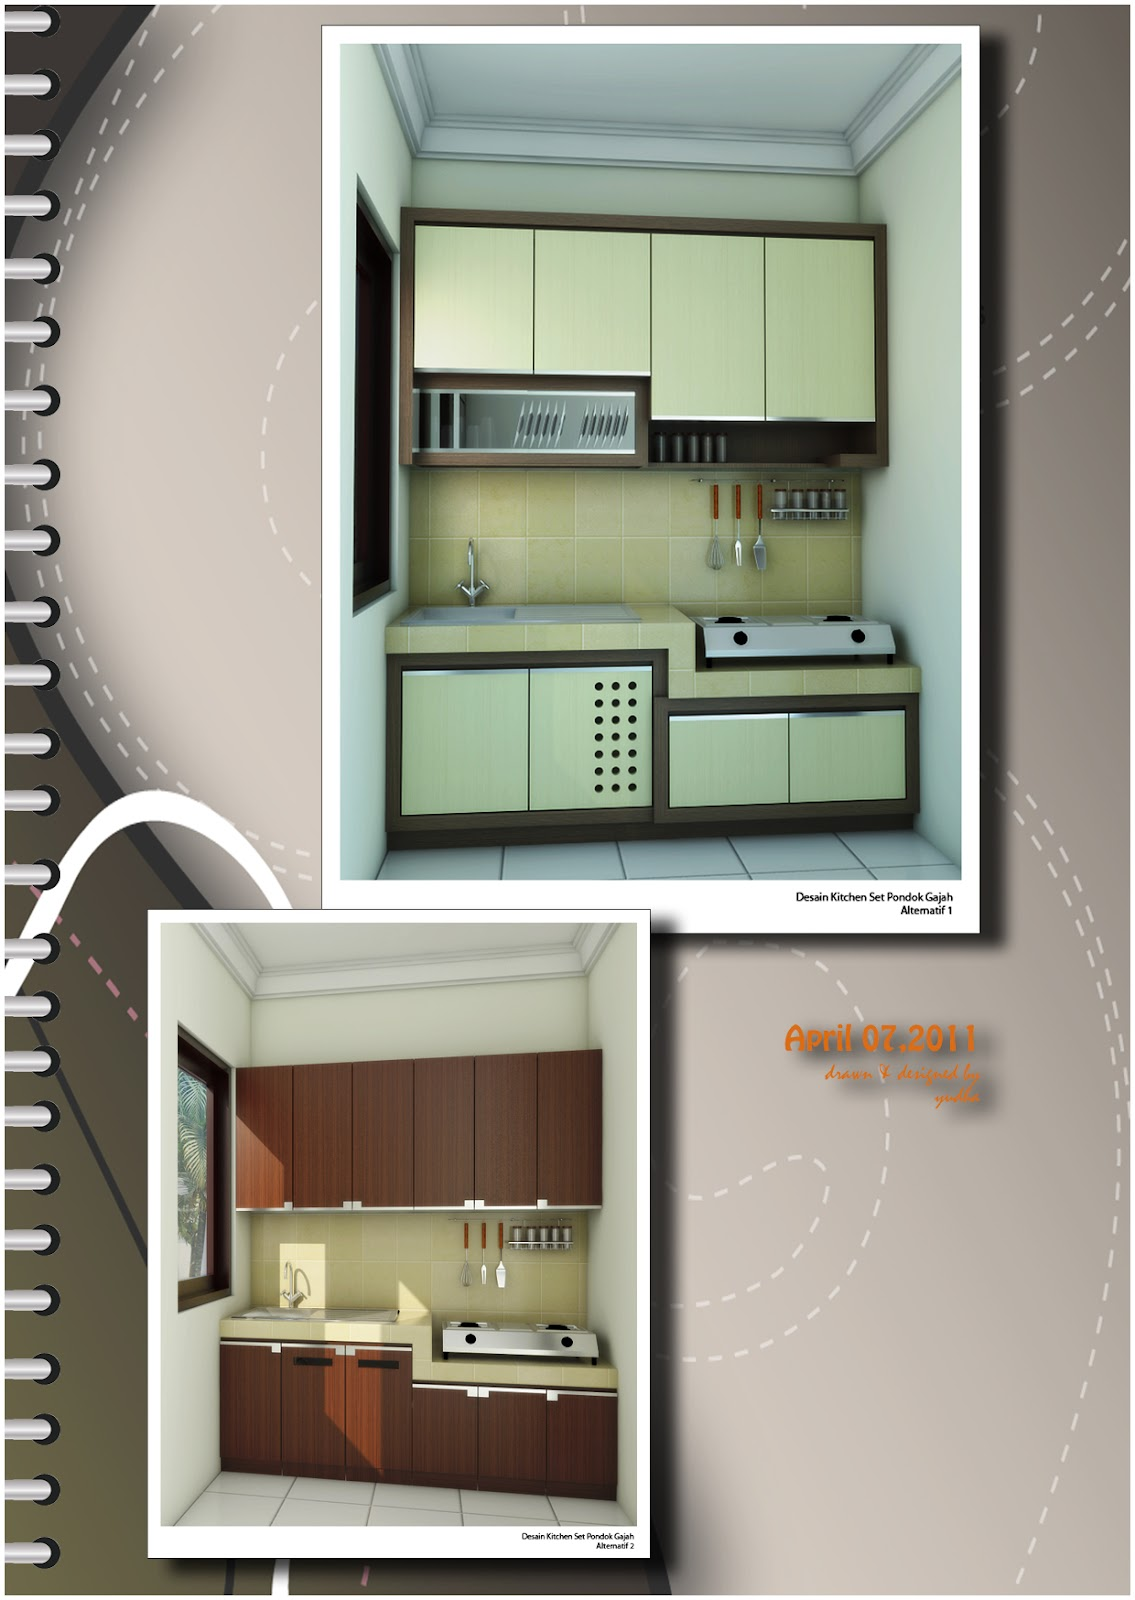 Kitchen set minimalis katalog desain pak de i for Katalog kitchen set